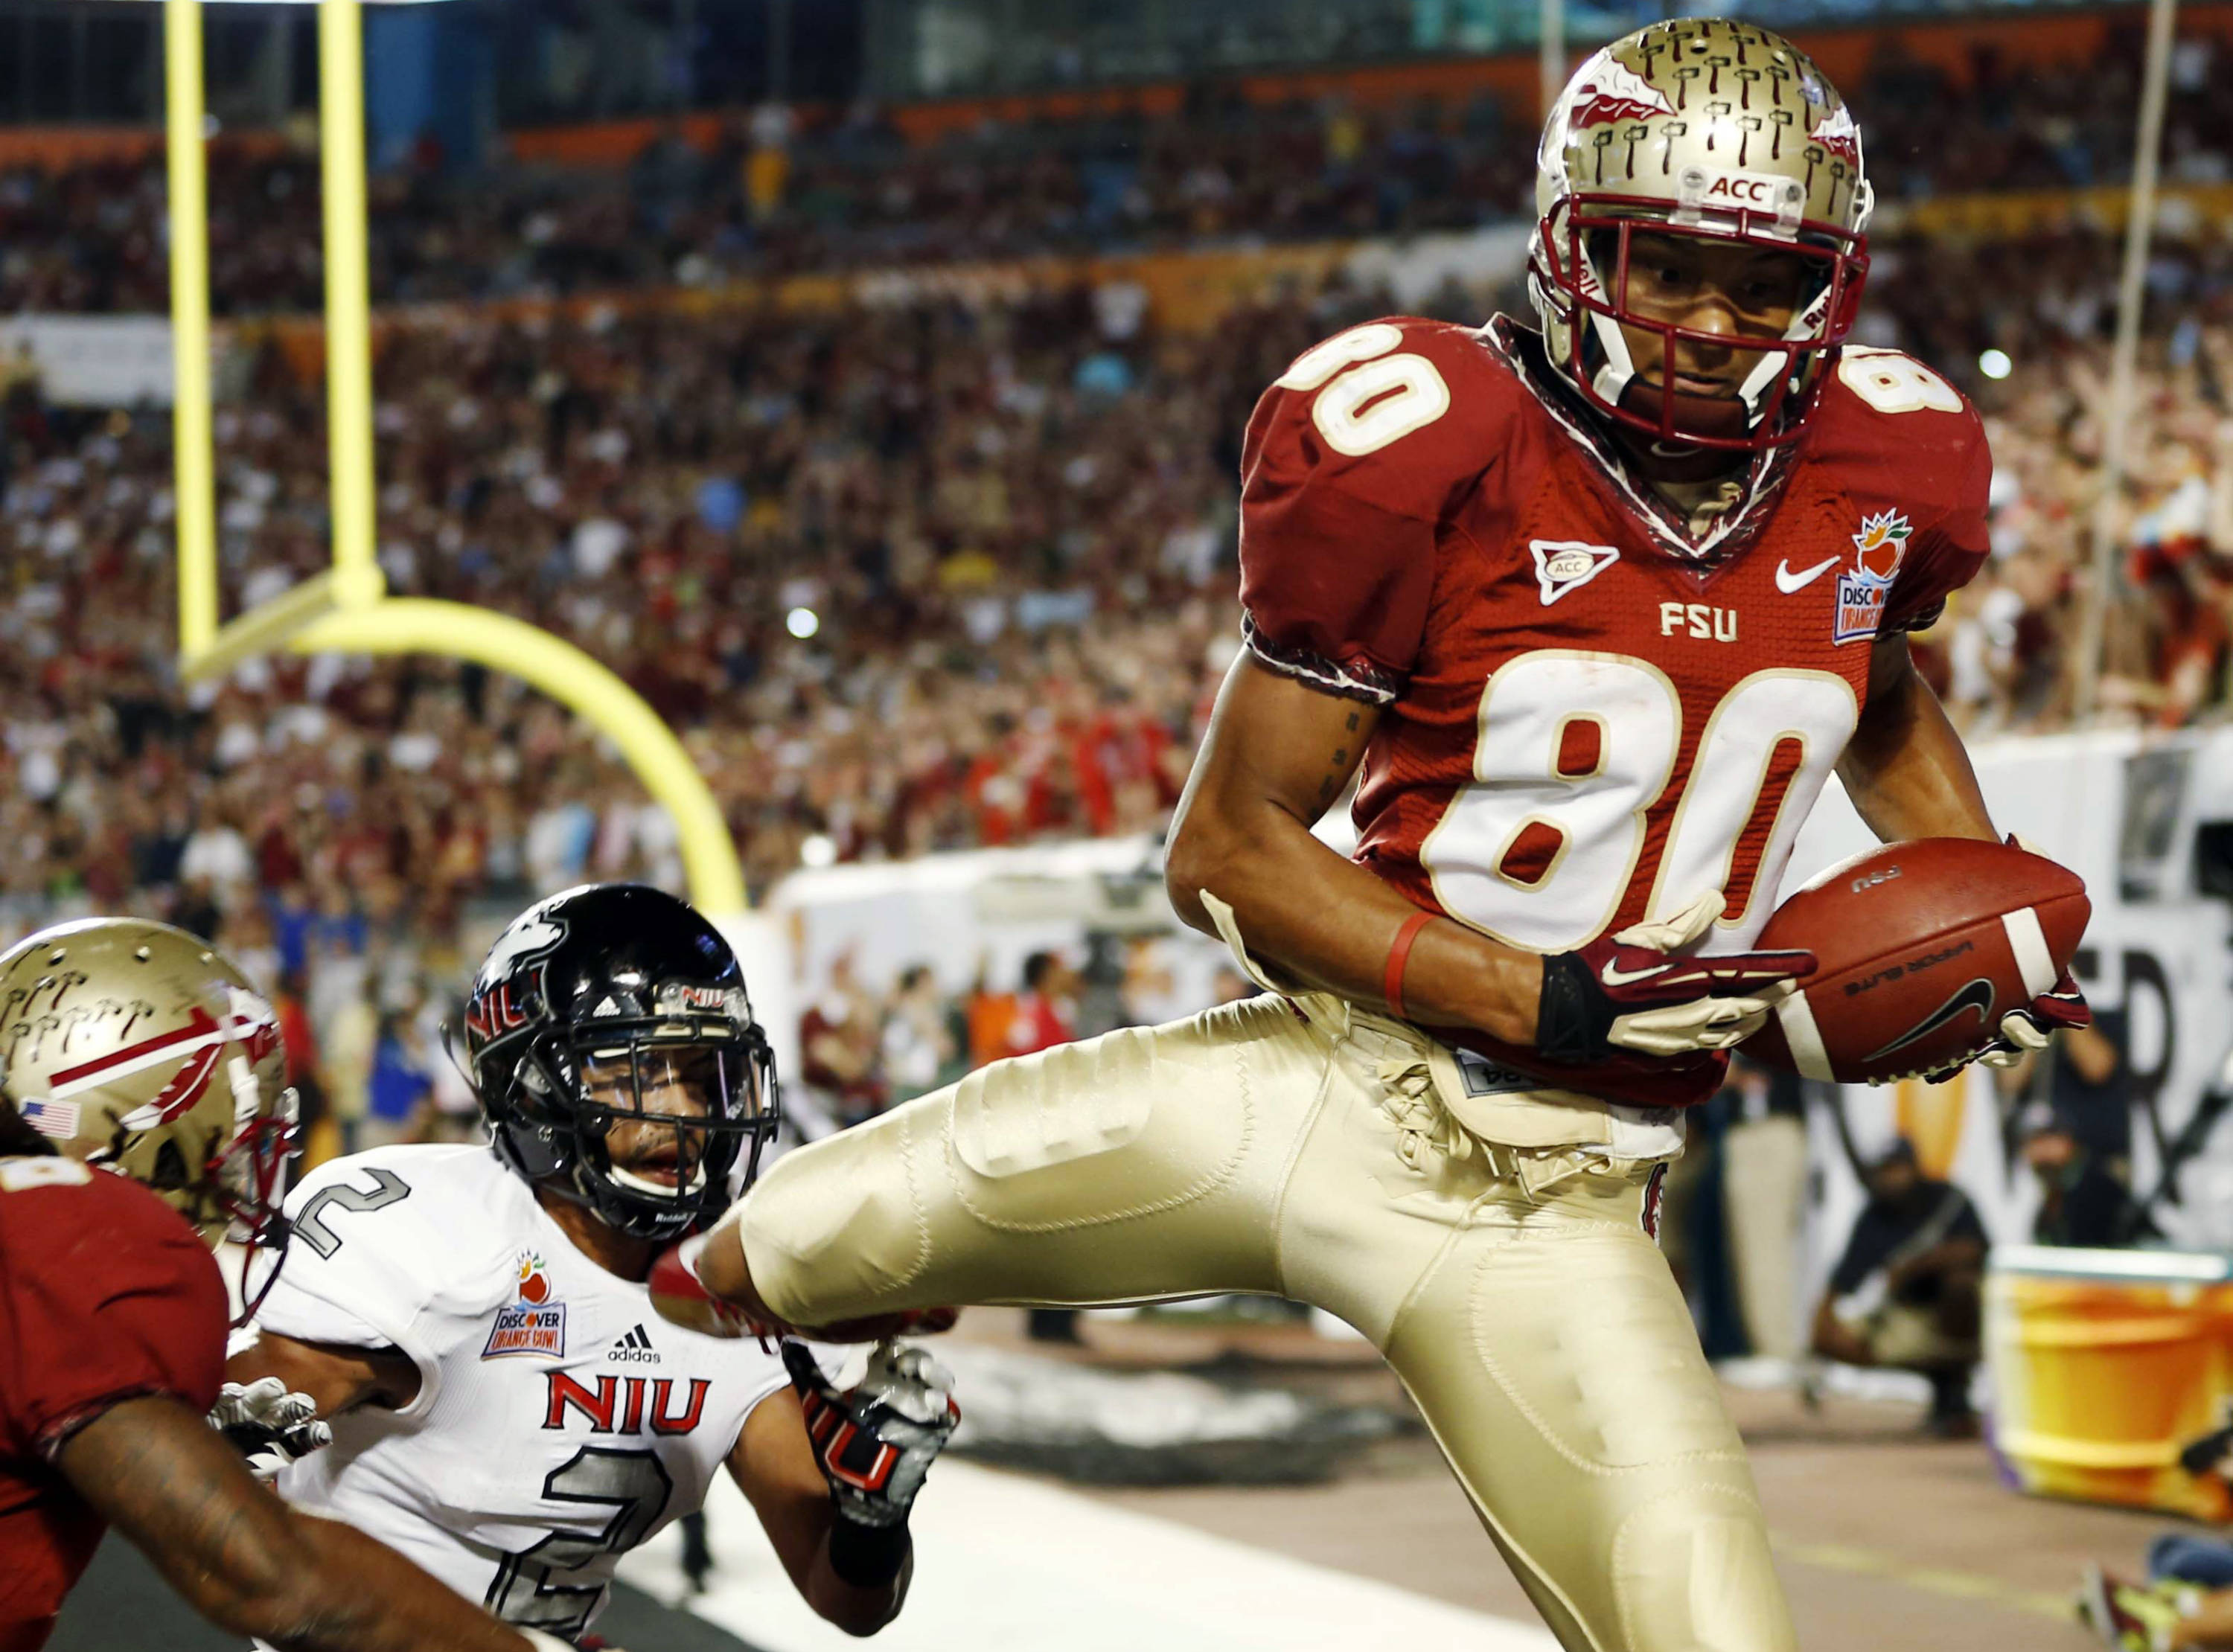 Florida State wide receiver Rashad Greene (80) pulls in a touchdown in the end zone during the first half of the Orange Bowl NCAA college football game against Northern Illinois, Tuesday, Jan. 1, 2013, in Miami. (AP Photo/Alan Diaz)